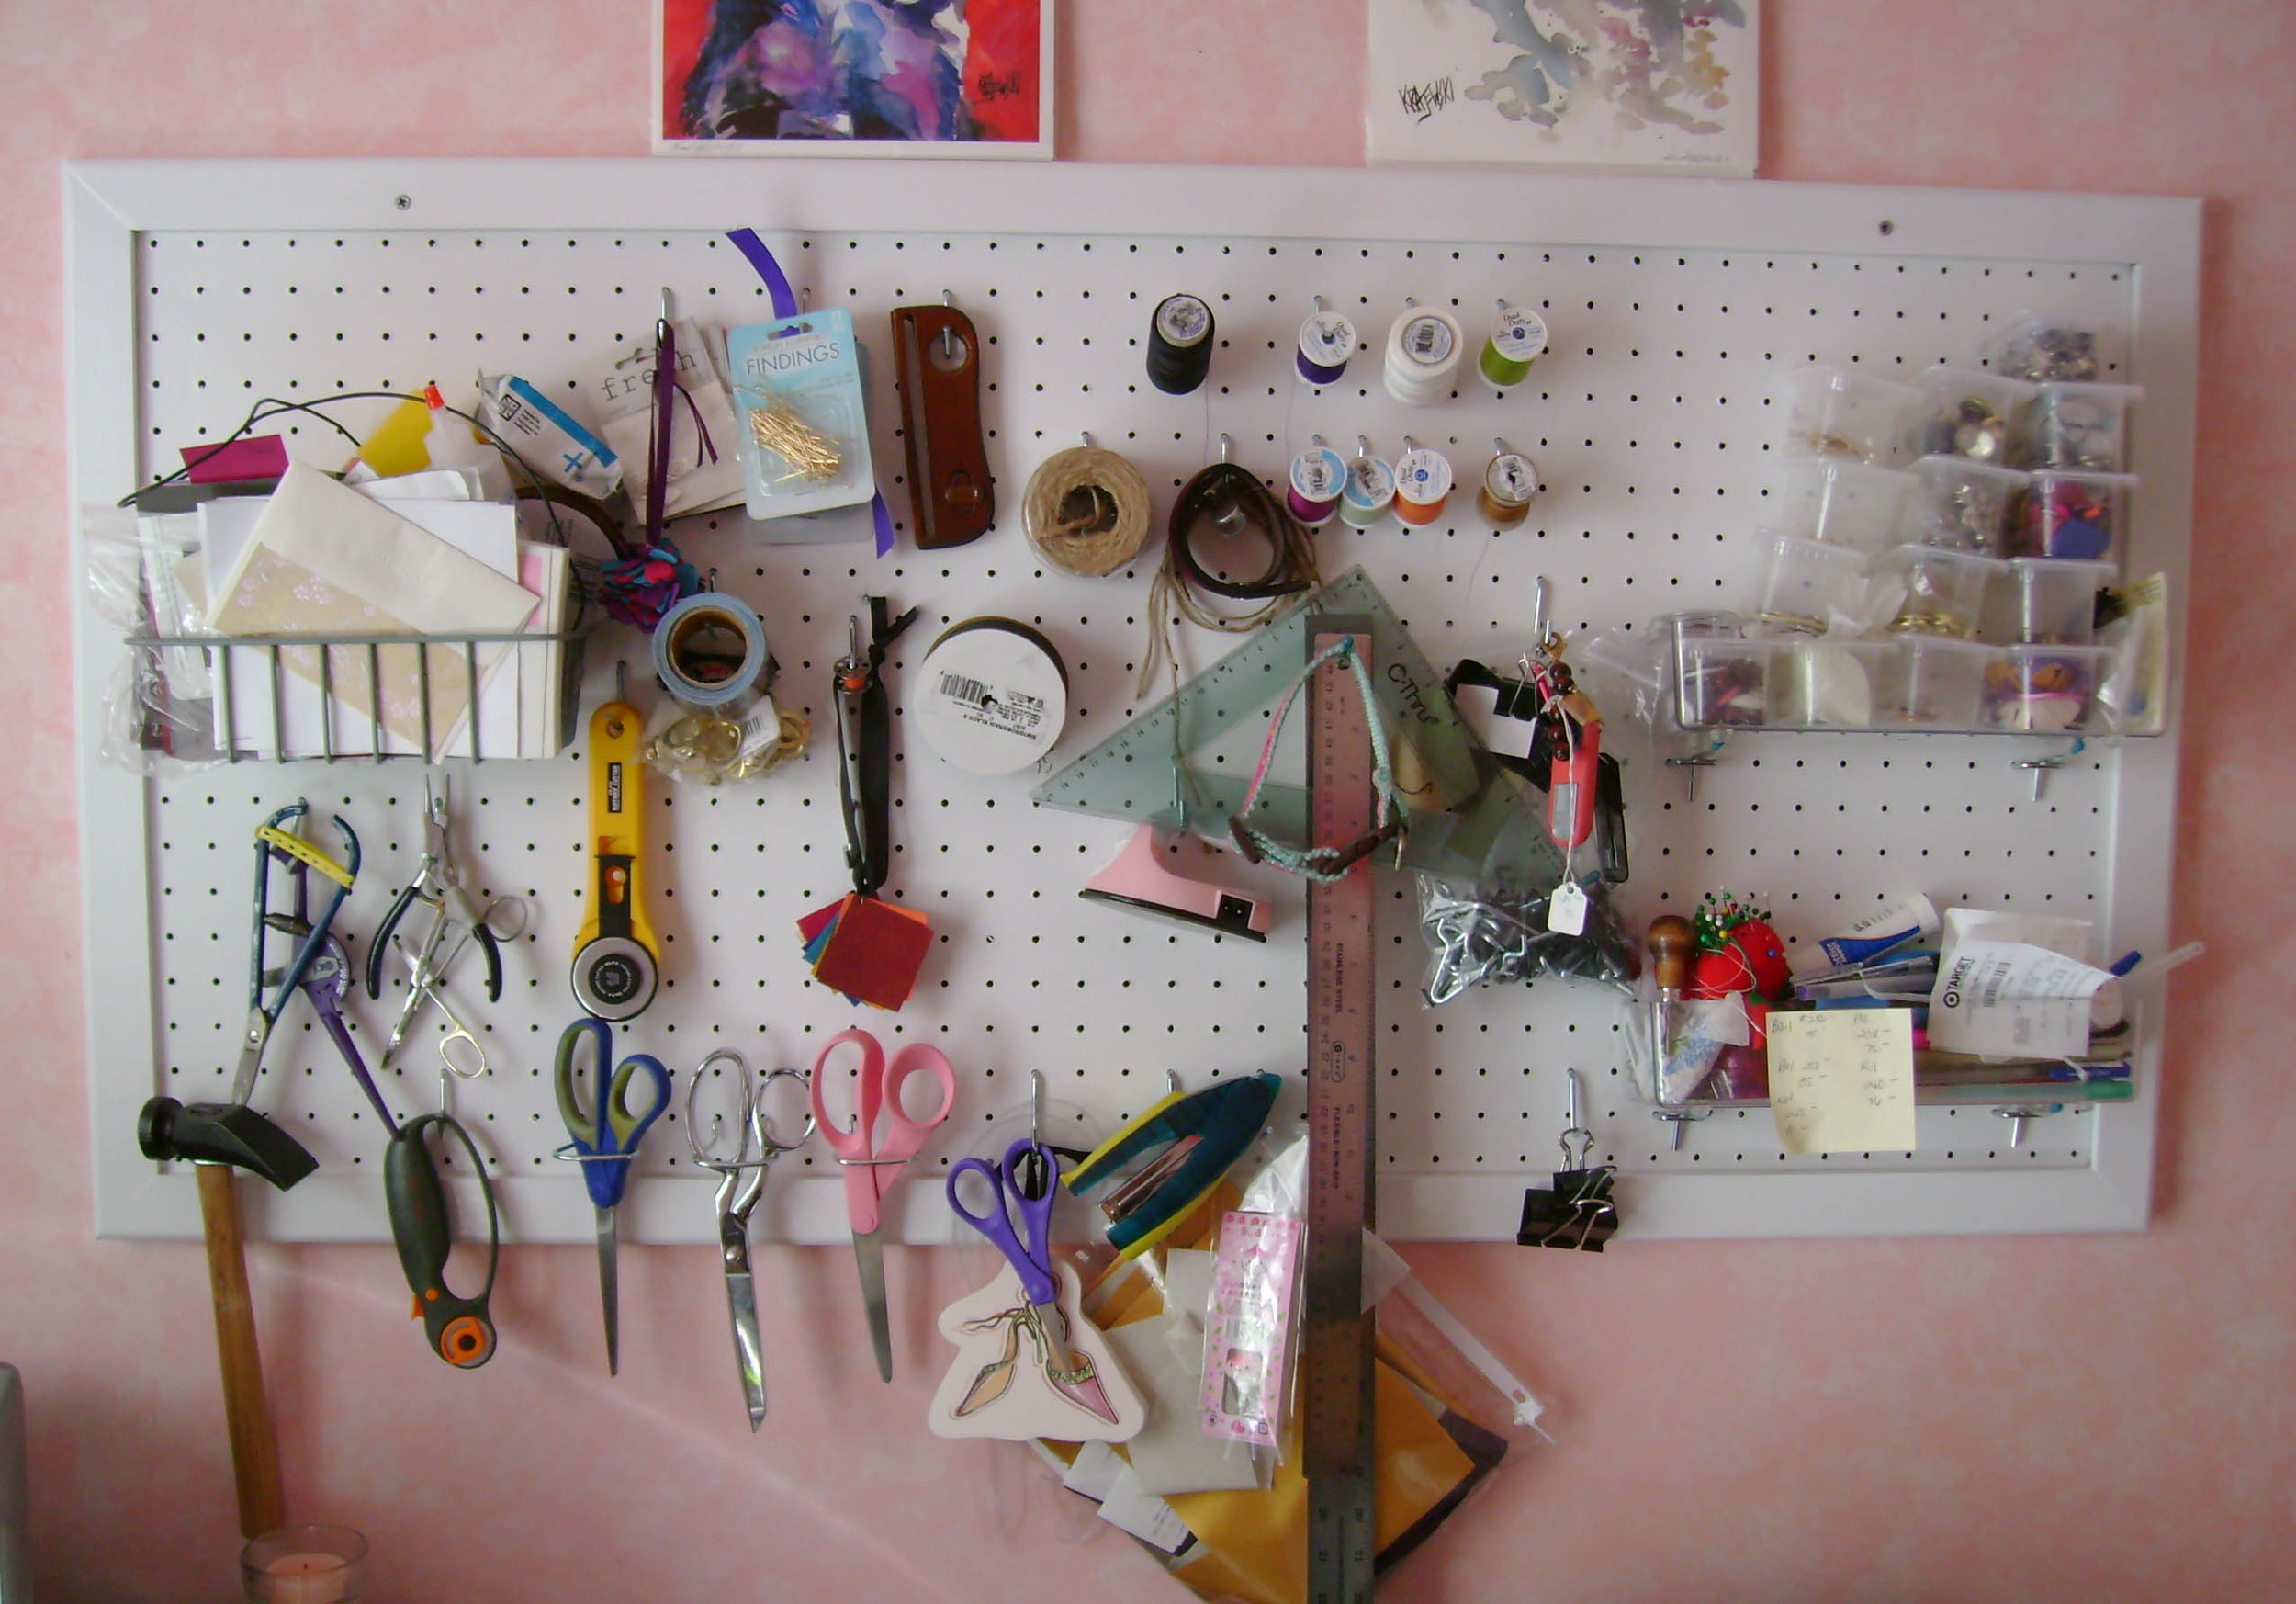 Another shot of her workspace. The pegboard is a great way to keep crafting tools organized.